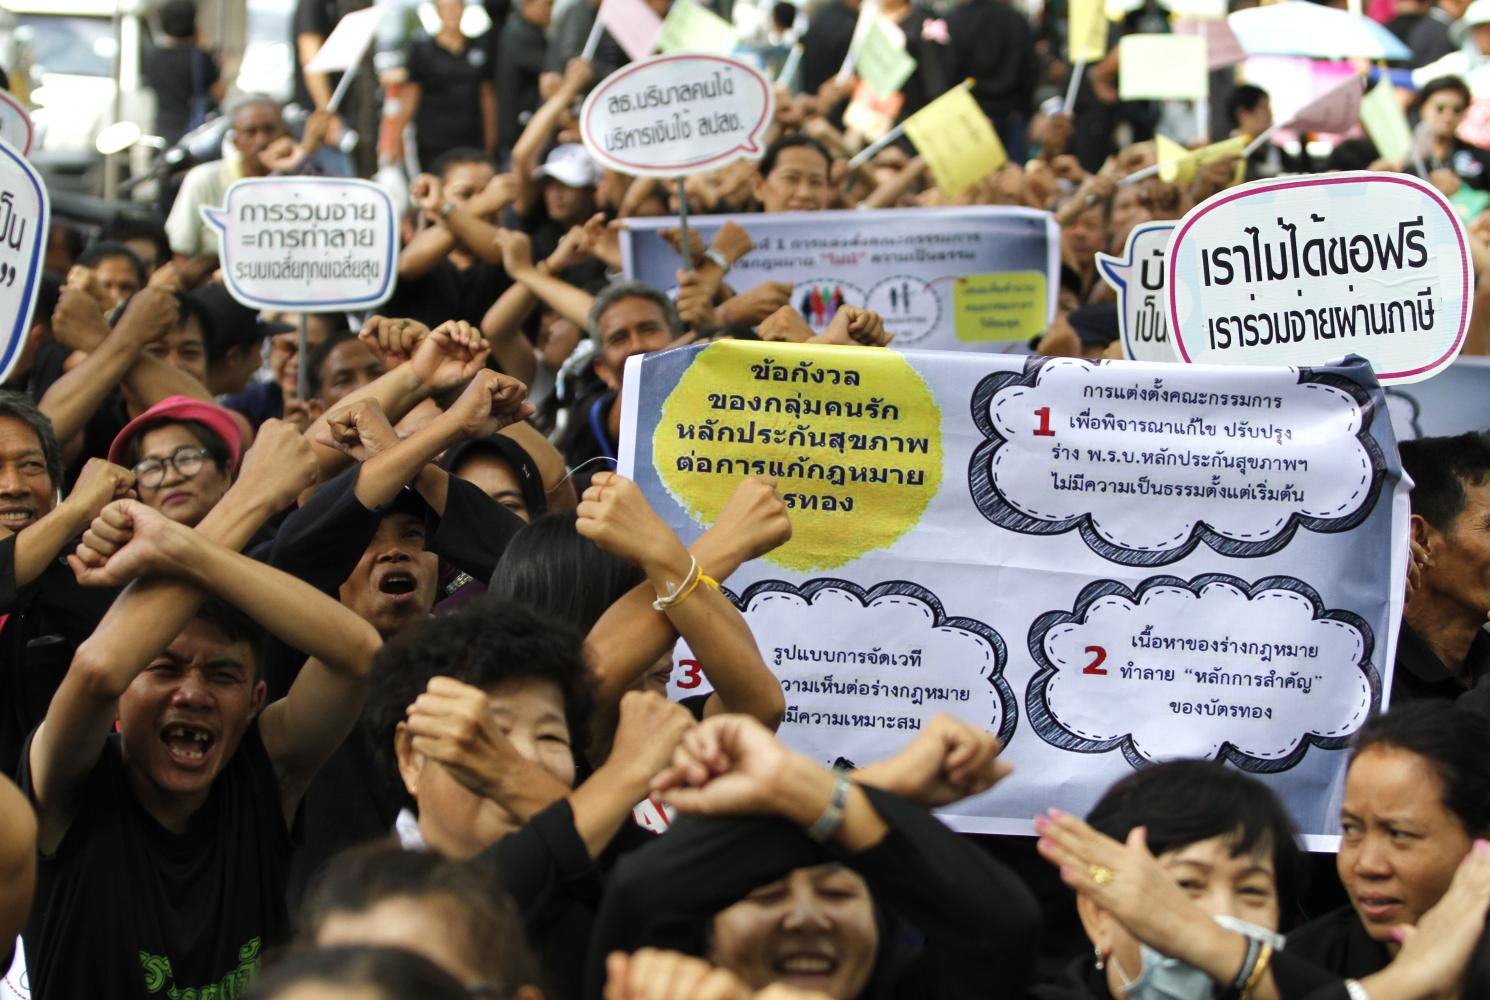 Health activists and advocacy groups conduct a campaign in support of universal healthcare.(Bangkok Post photo)